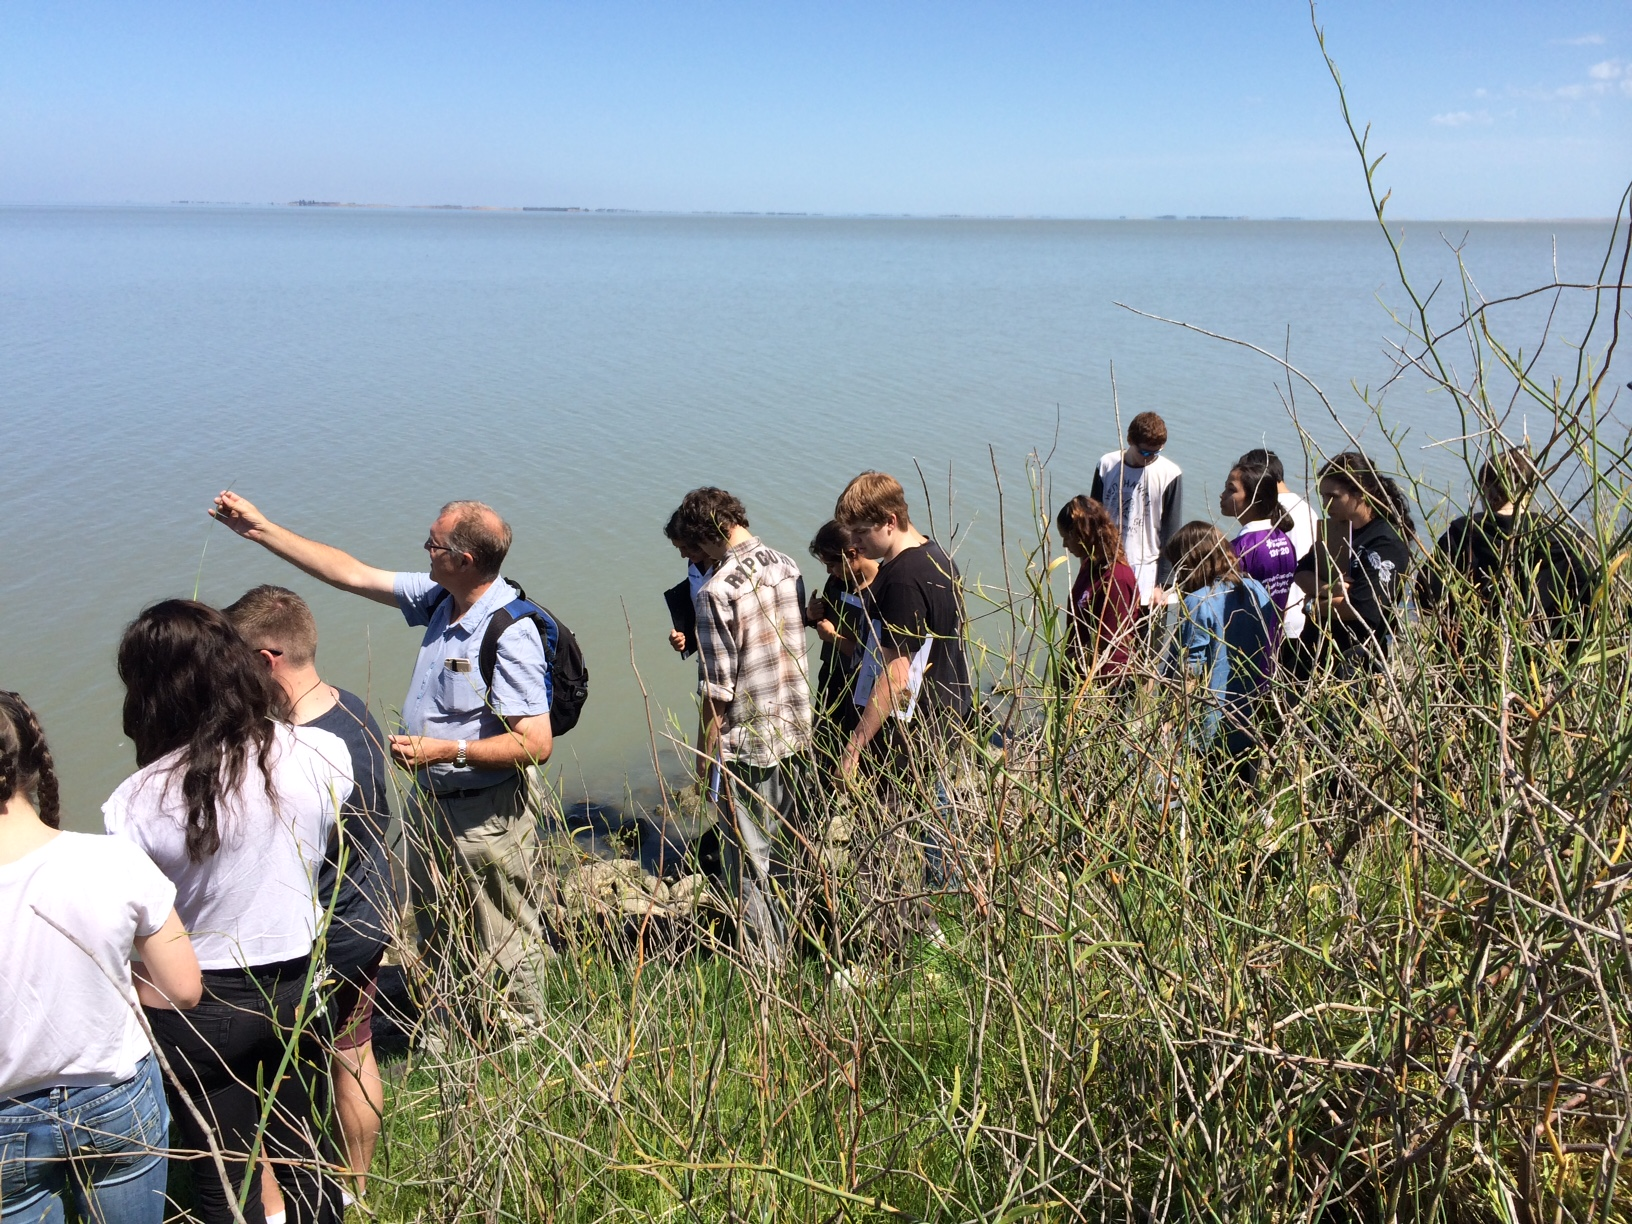 Photograph of students examining reeds growing by the lake at Meningie